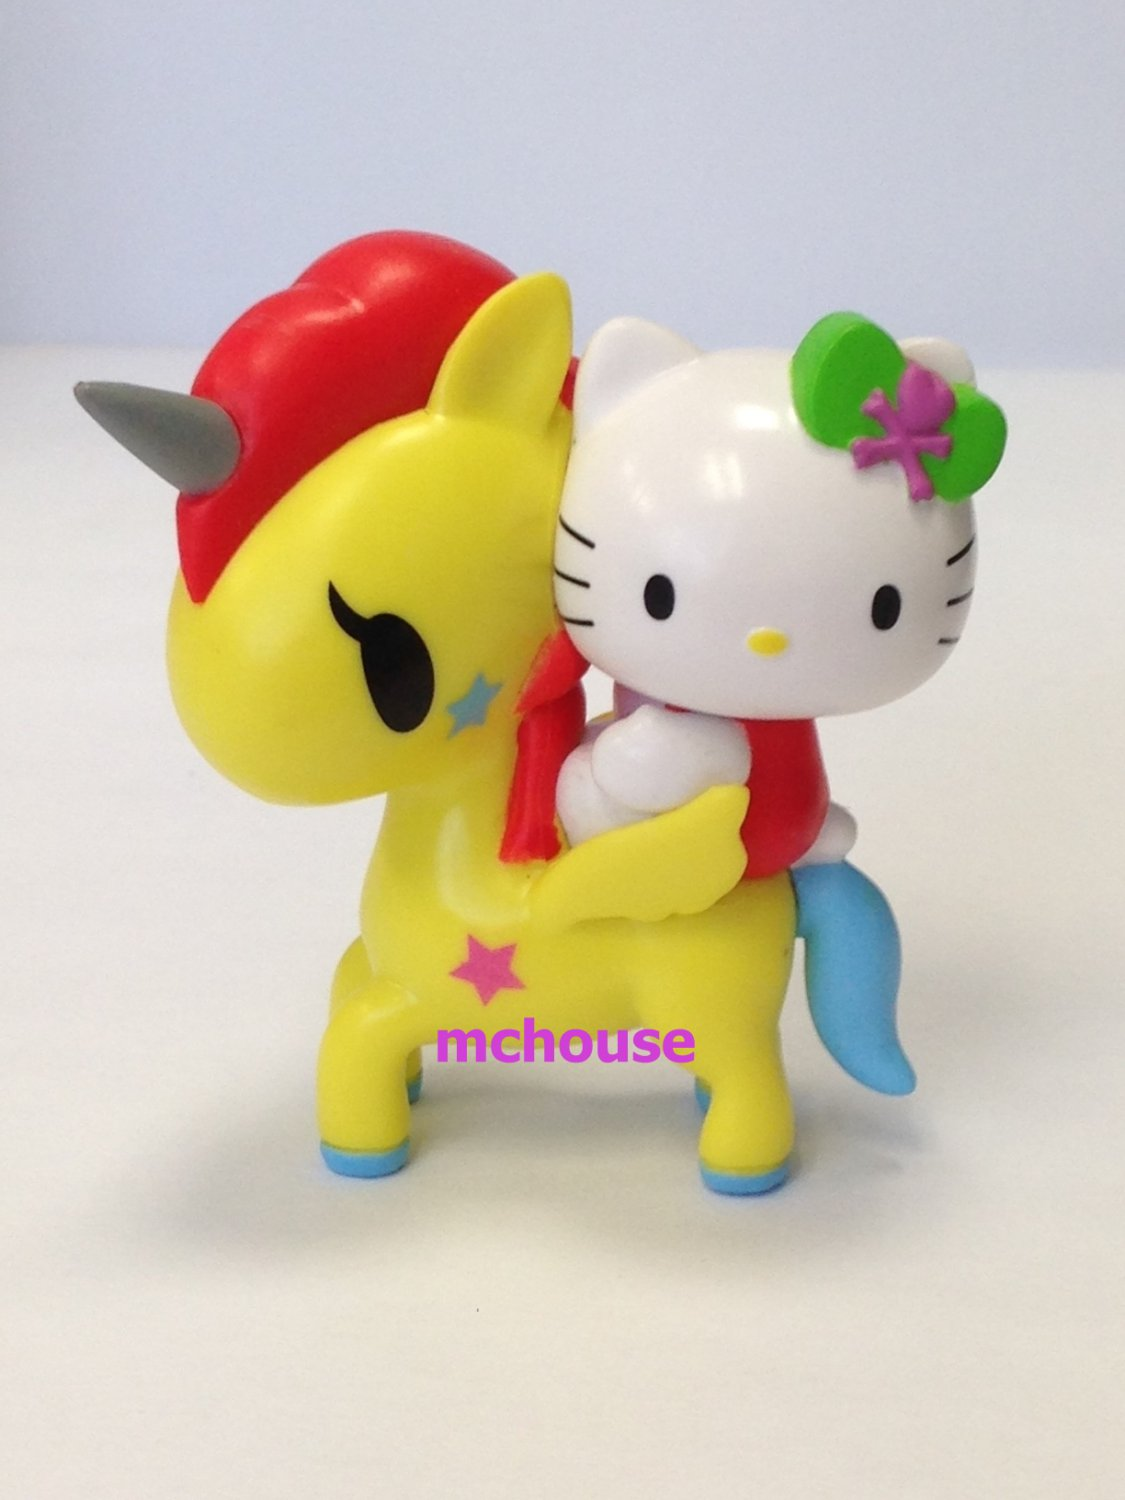 7-11 HK Sanrio Hello Kitty Tokidoki Wonderland Figurine Unicorn Kitty